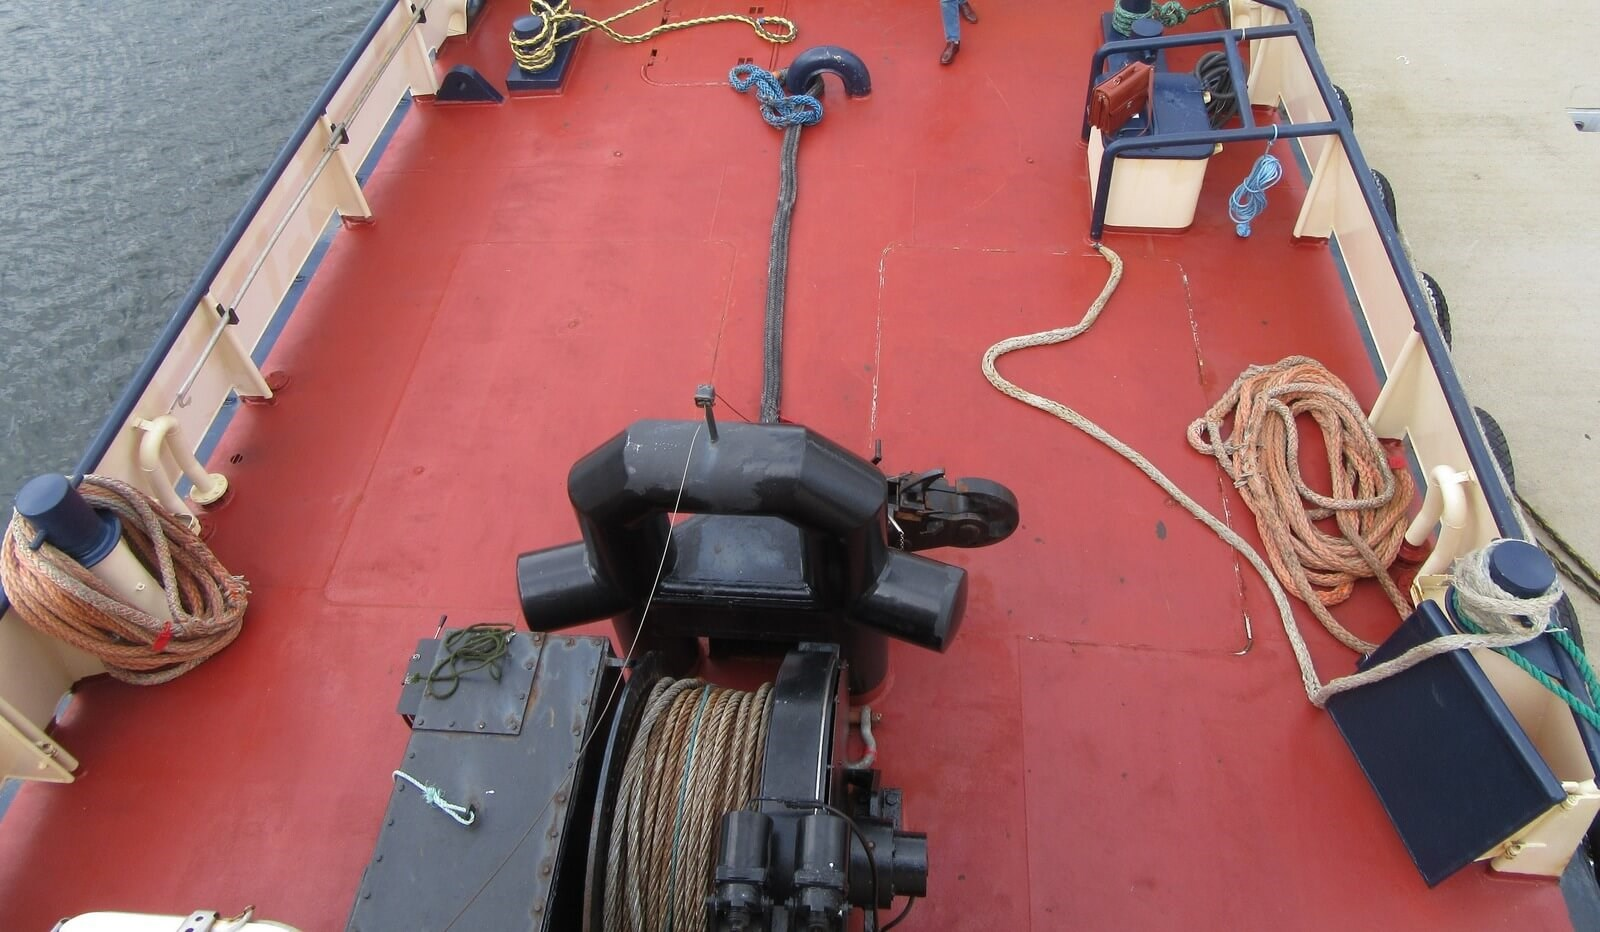 Aft deck overview